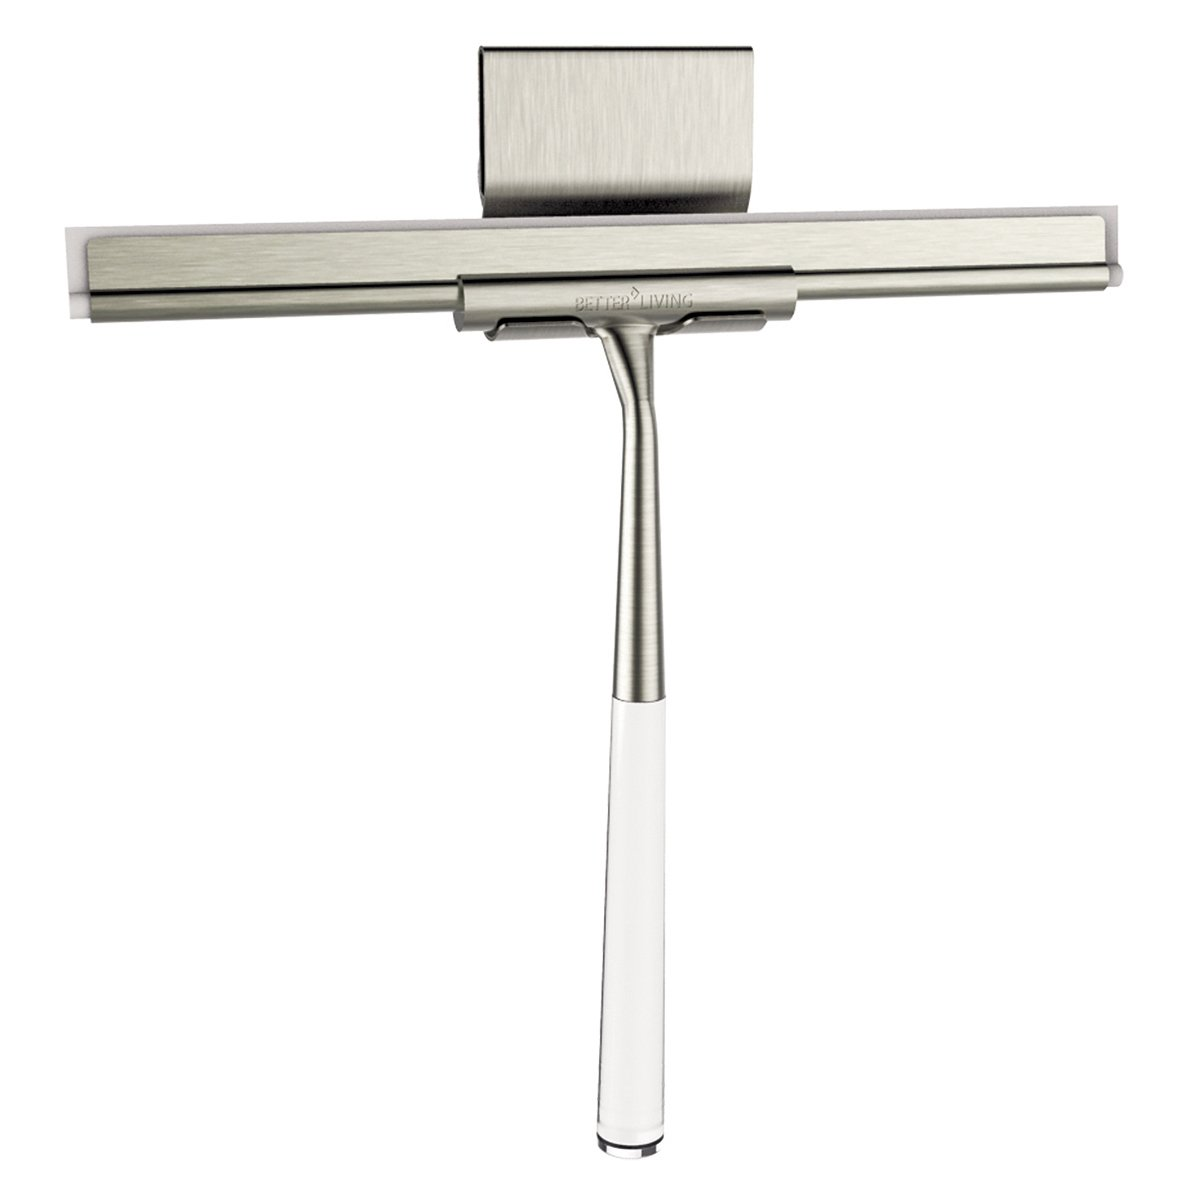 Amazon.com: Better Living Products 18099 Linea Luxury Shower Squeegee,  Brushed Nickel With Stainless Steel: Home U0026 Kitchen